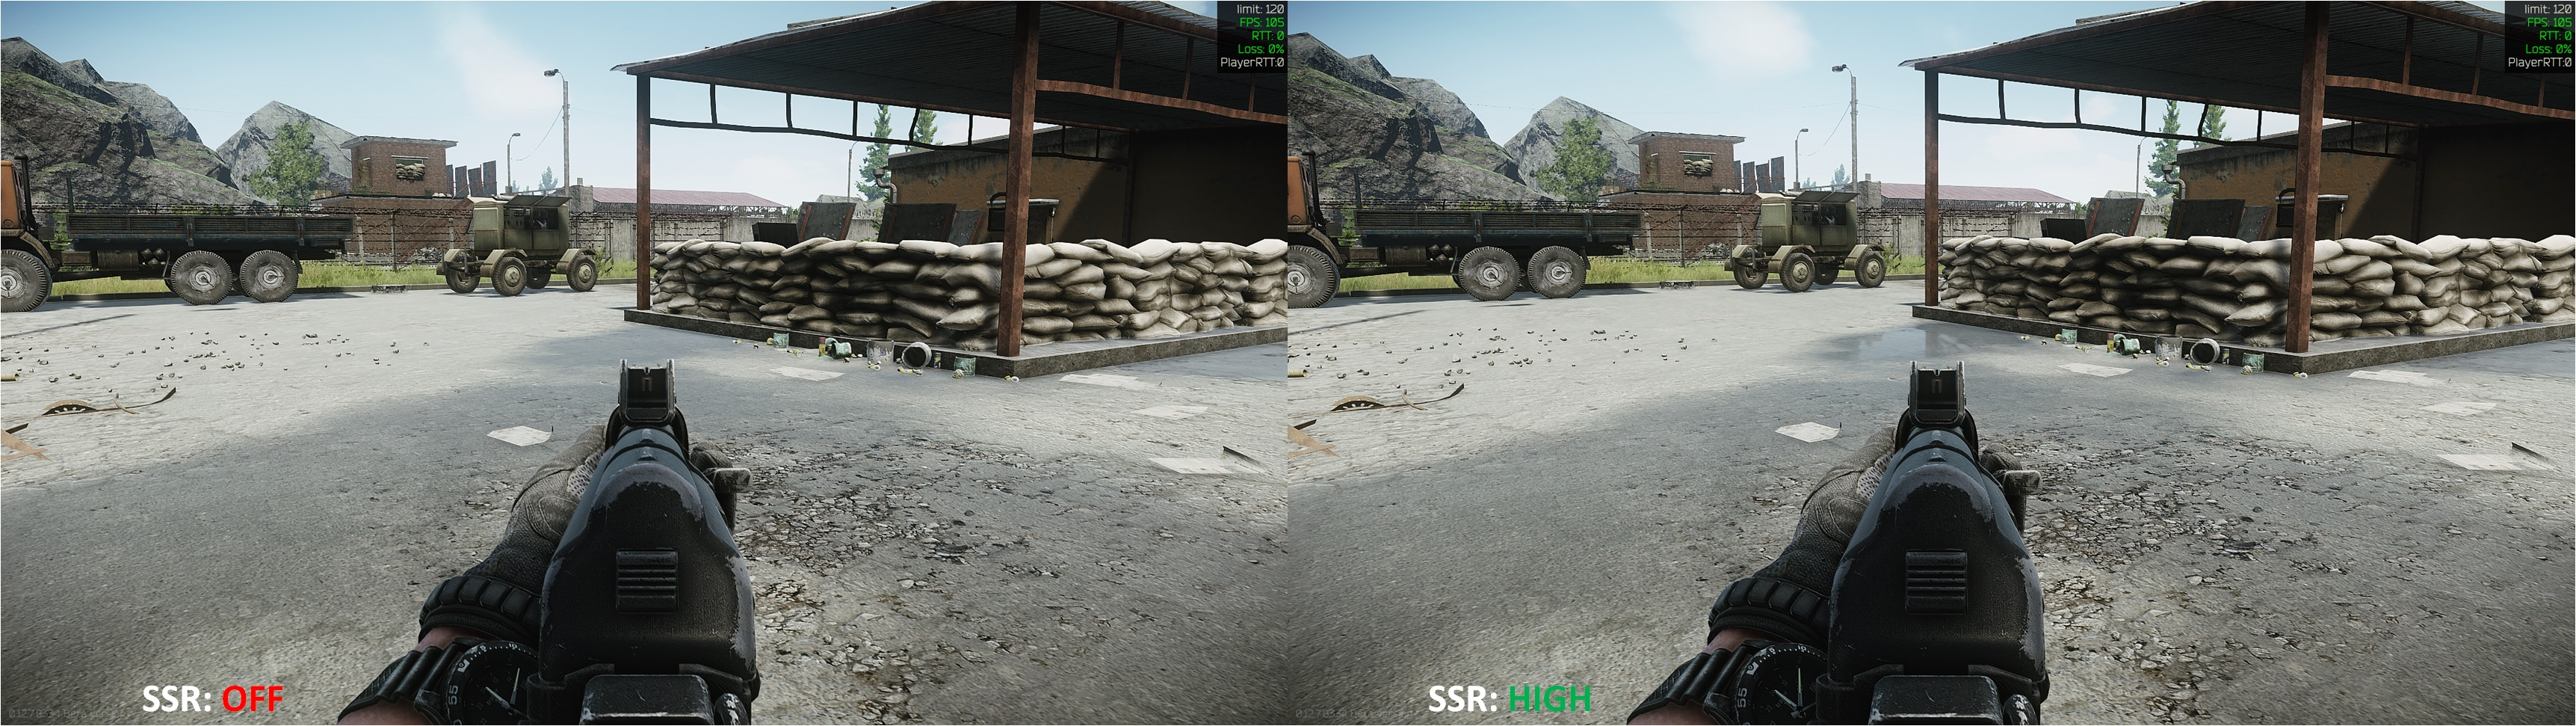 Tarkov SSR Comparison